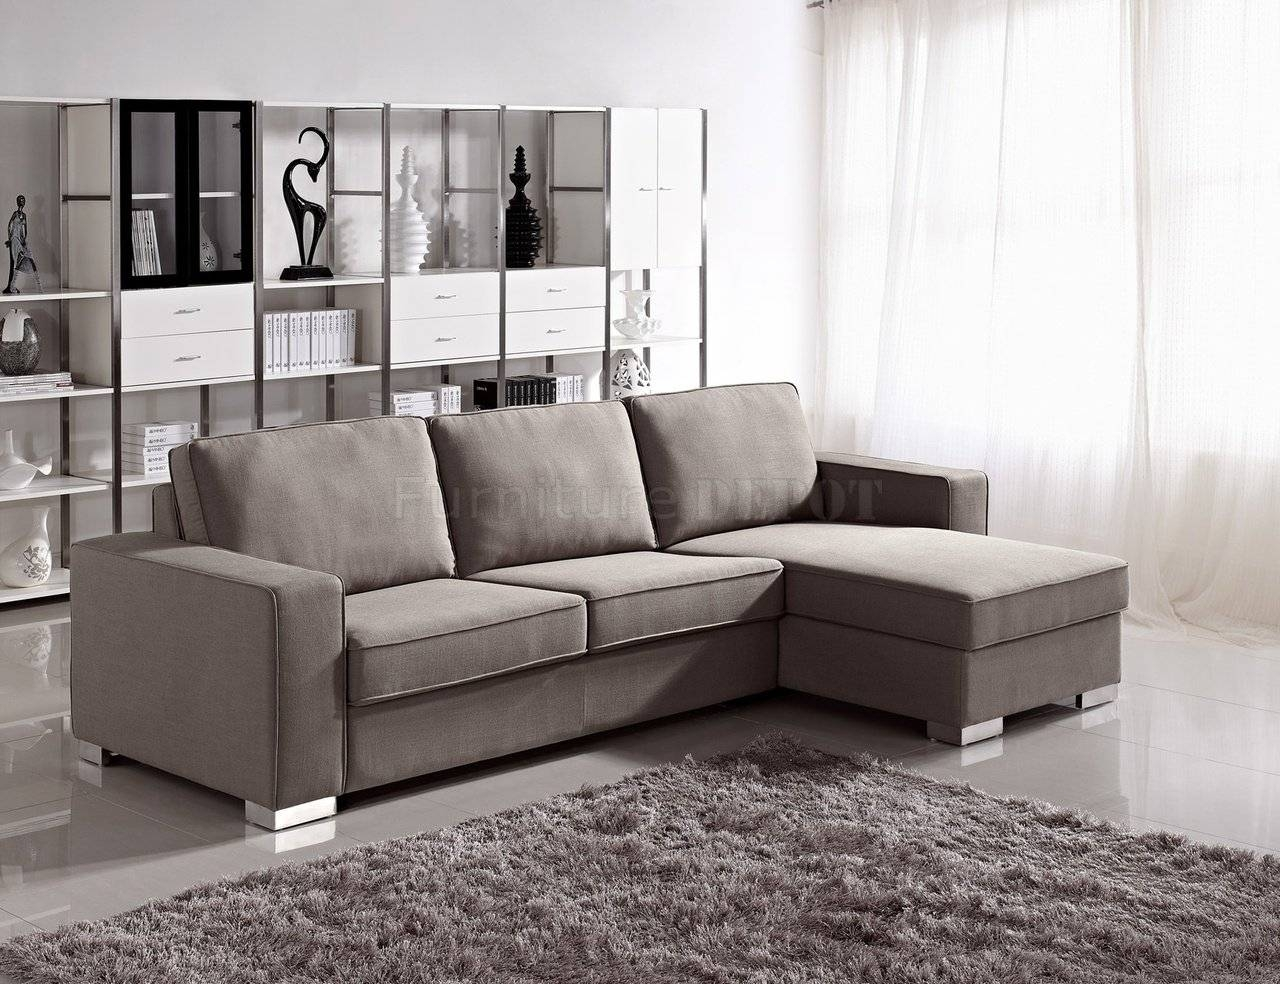 12 Best Collection Of Convertible Sectional Sofas within Convertible Sectional Sofas (Image 2 of 30)